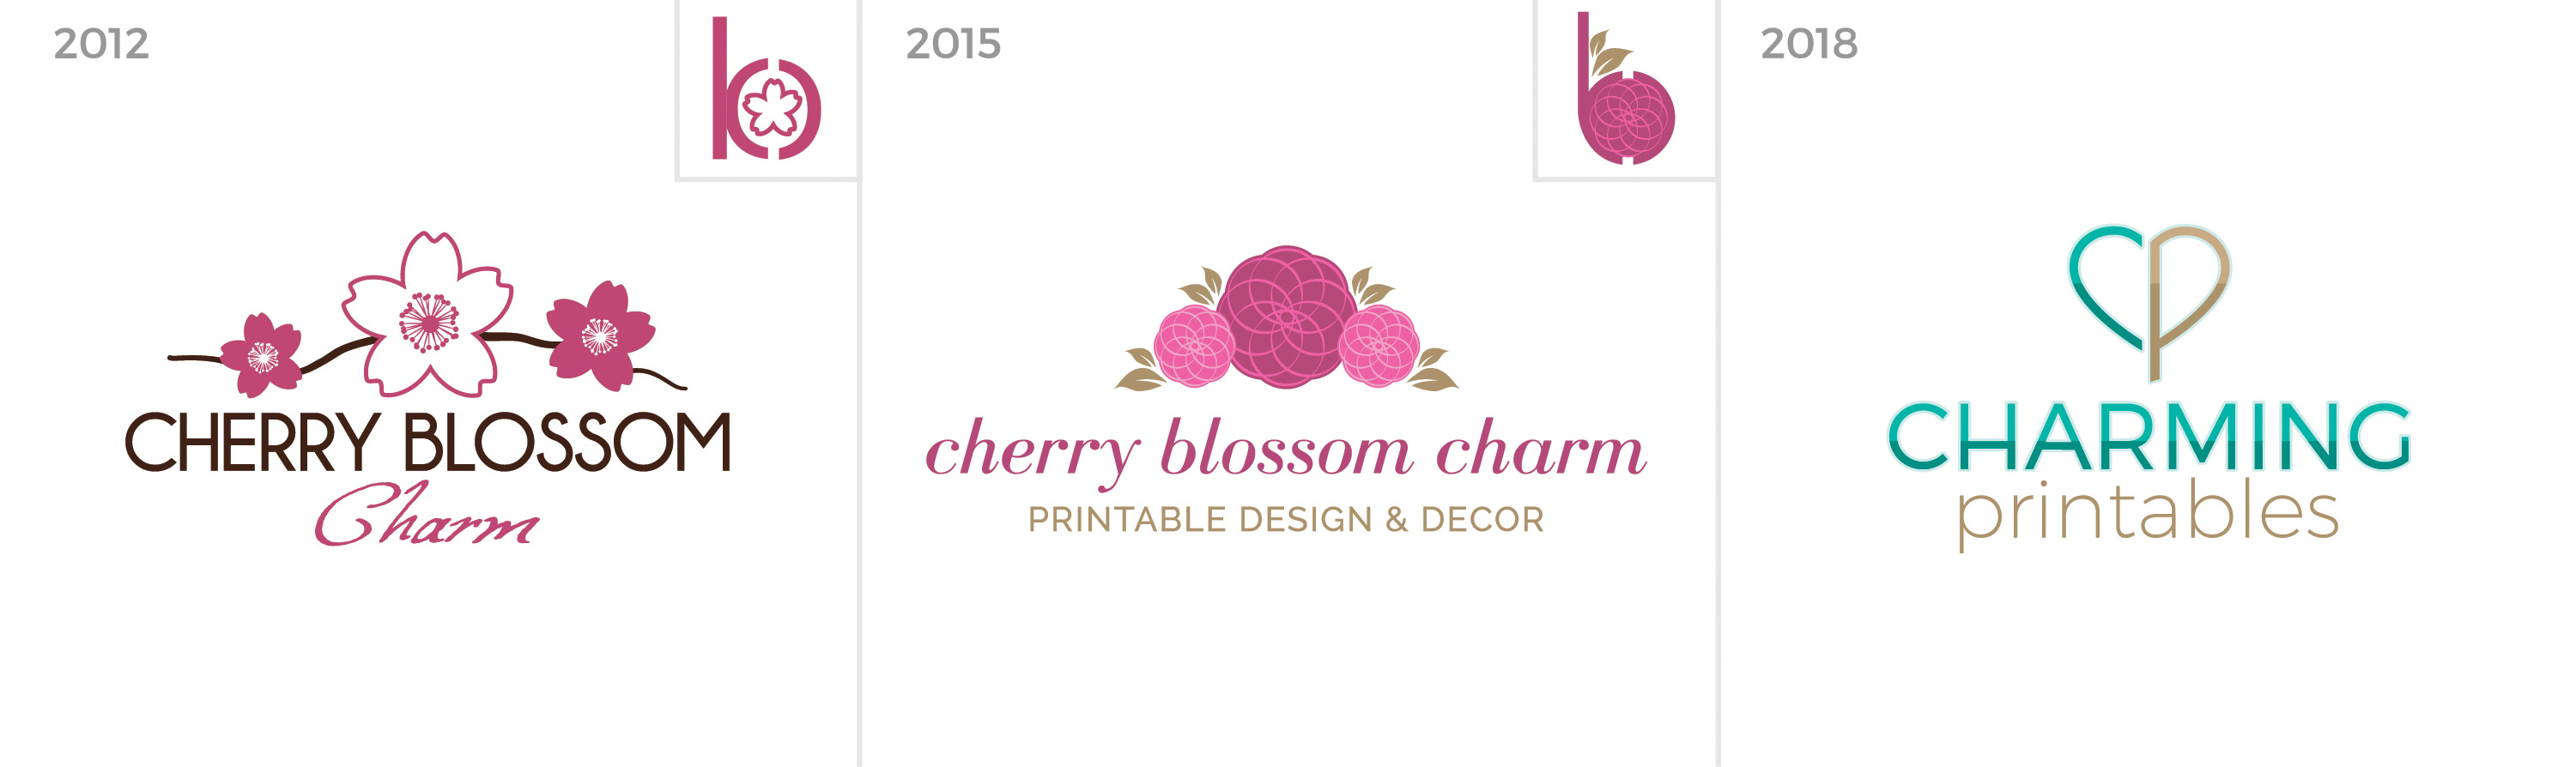 Cherry Blossom Charm to Charming Printables